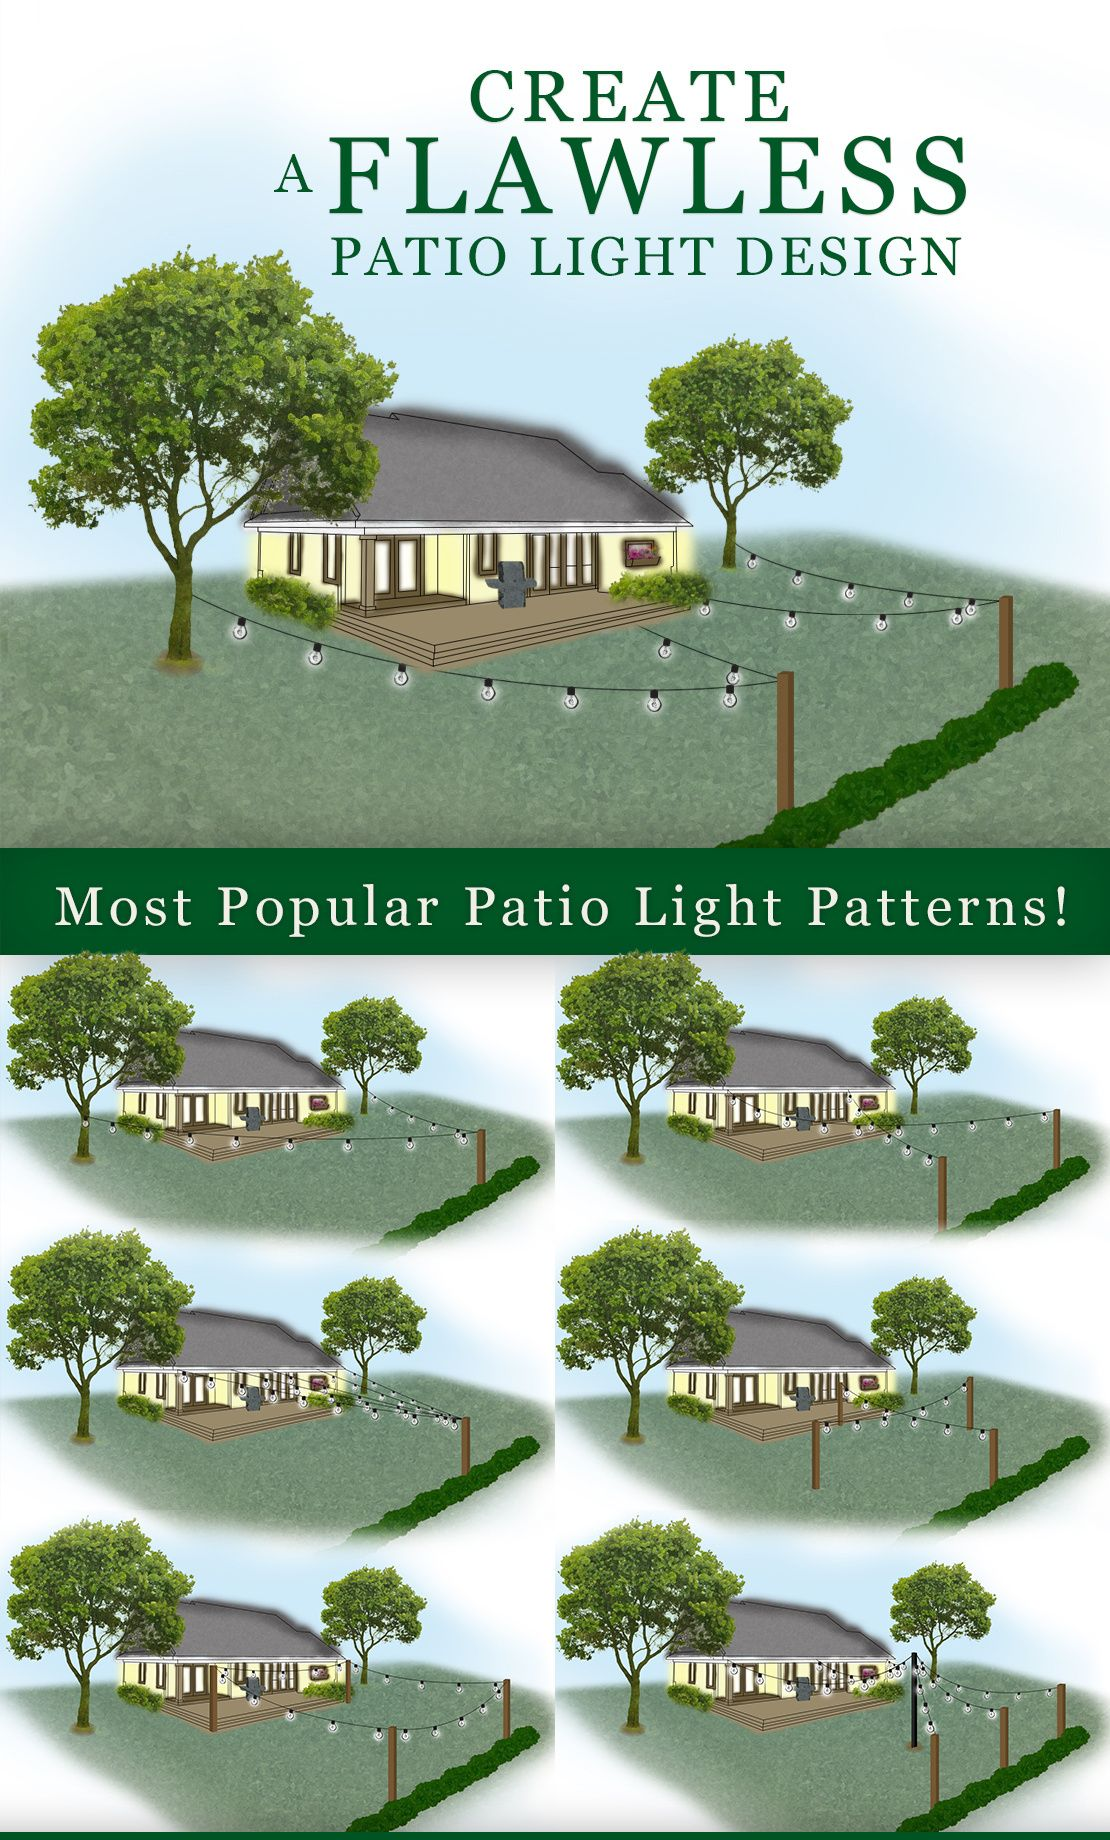 How to hang patio lights and patio light pattern ideas. Like and Repin. Thx - How To Plan And Hang Patio Lights In 2018 That Part Outdoors